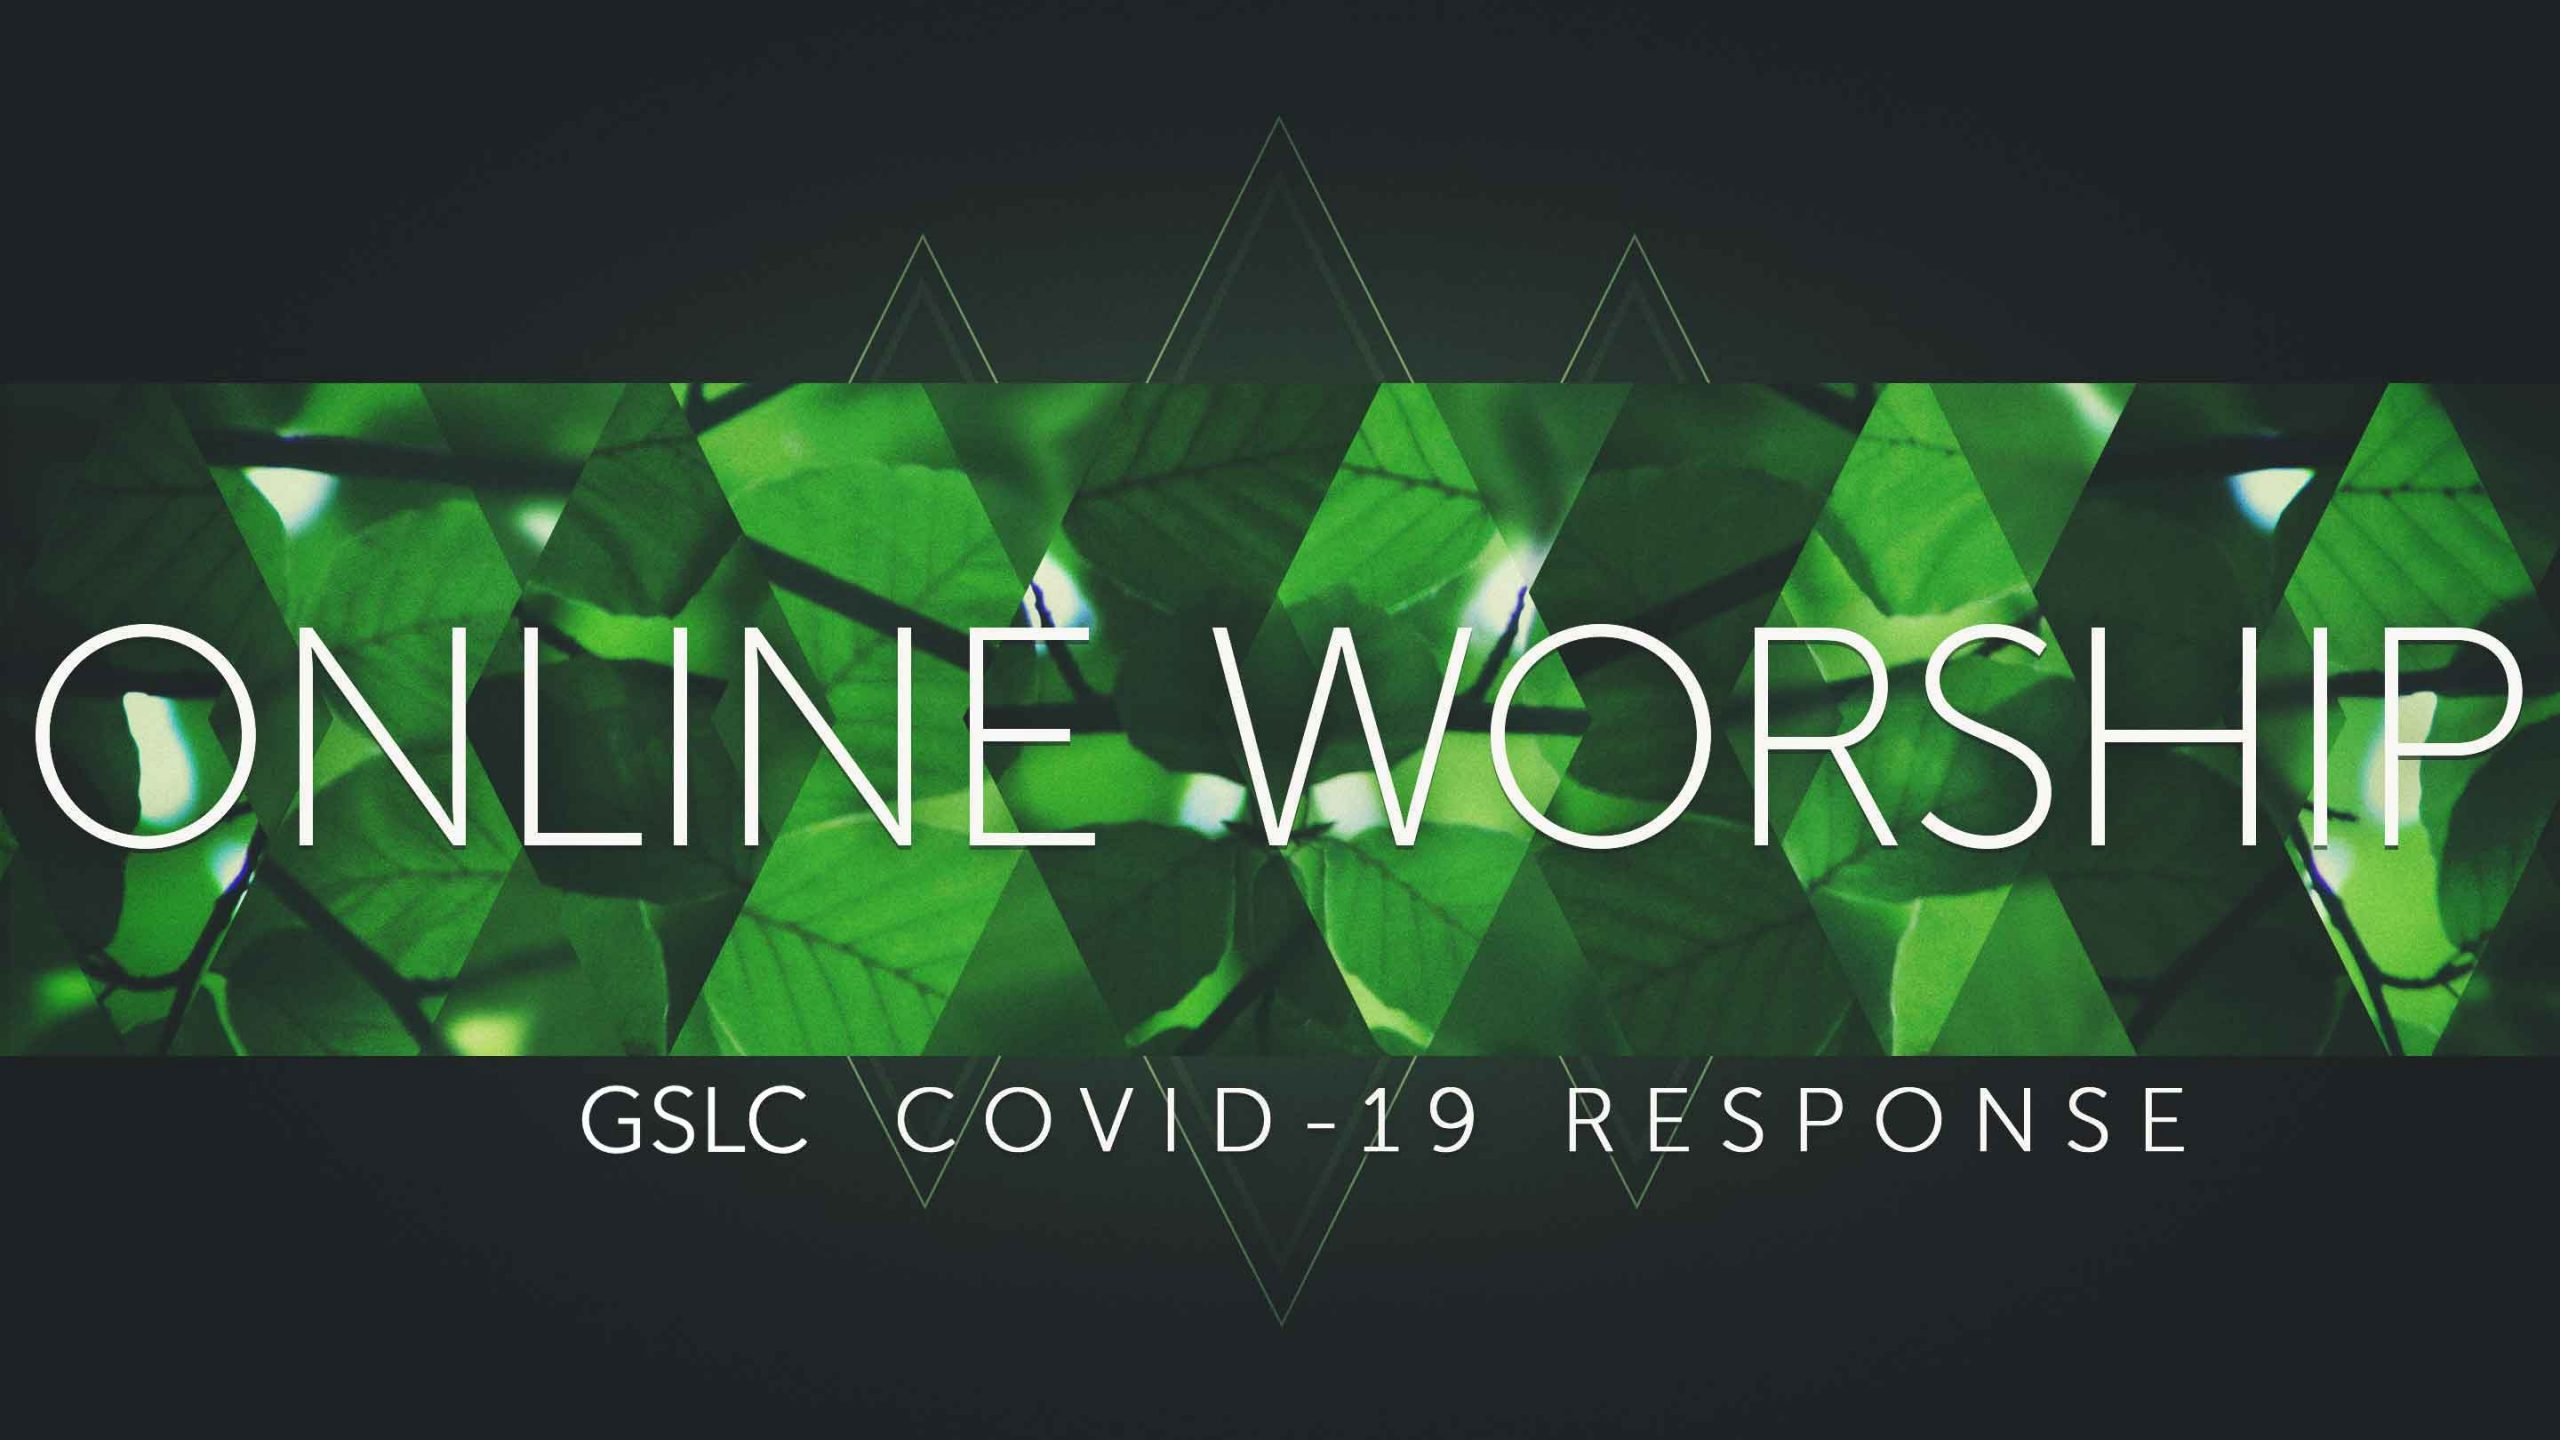 GSLC COVID 19 RESPONSE